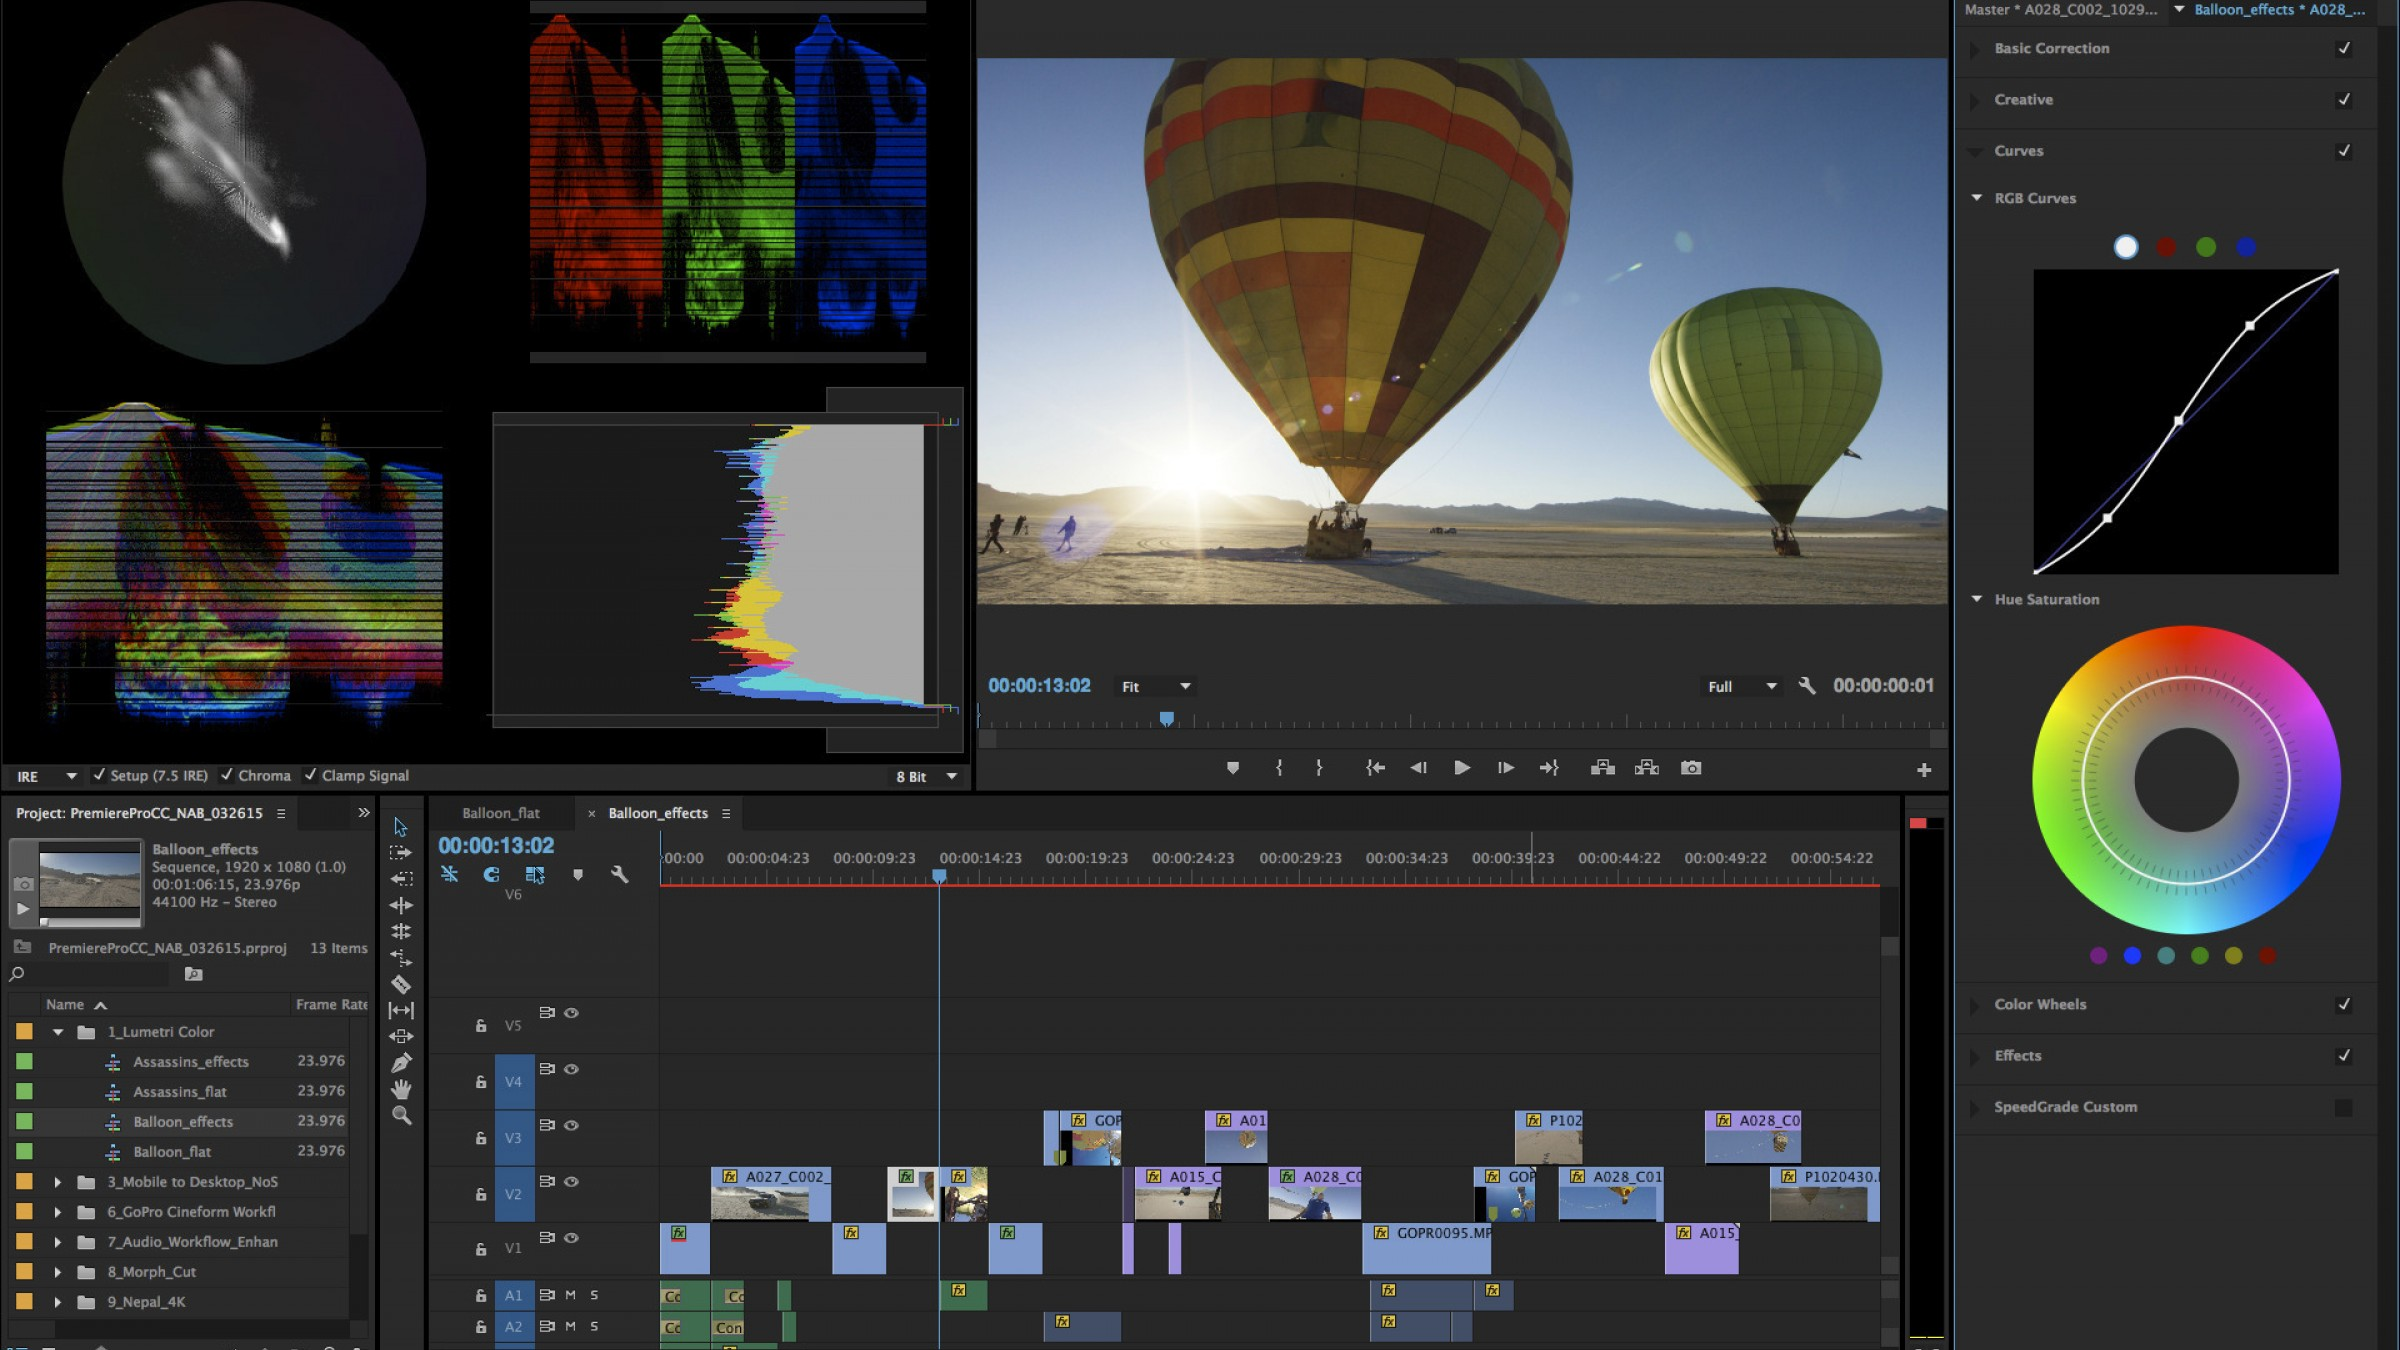 Exceptional Premiere Pro Just Got Some Massive Upgrades To Its Color Correctionabilities Premiere Pro Just Got Some Massive Upgrades To Its Color Correction Premiere Vs Premier Pronunciation Premiere dpreview Premiere Vs Premier